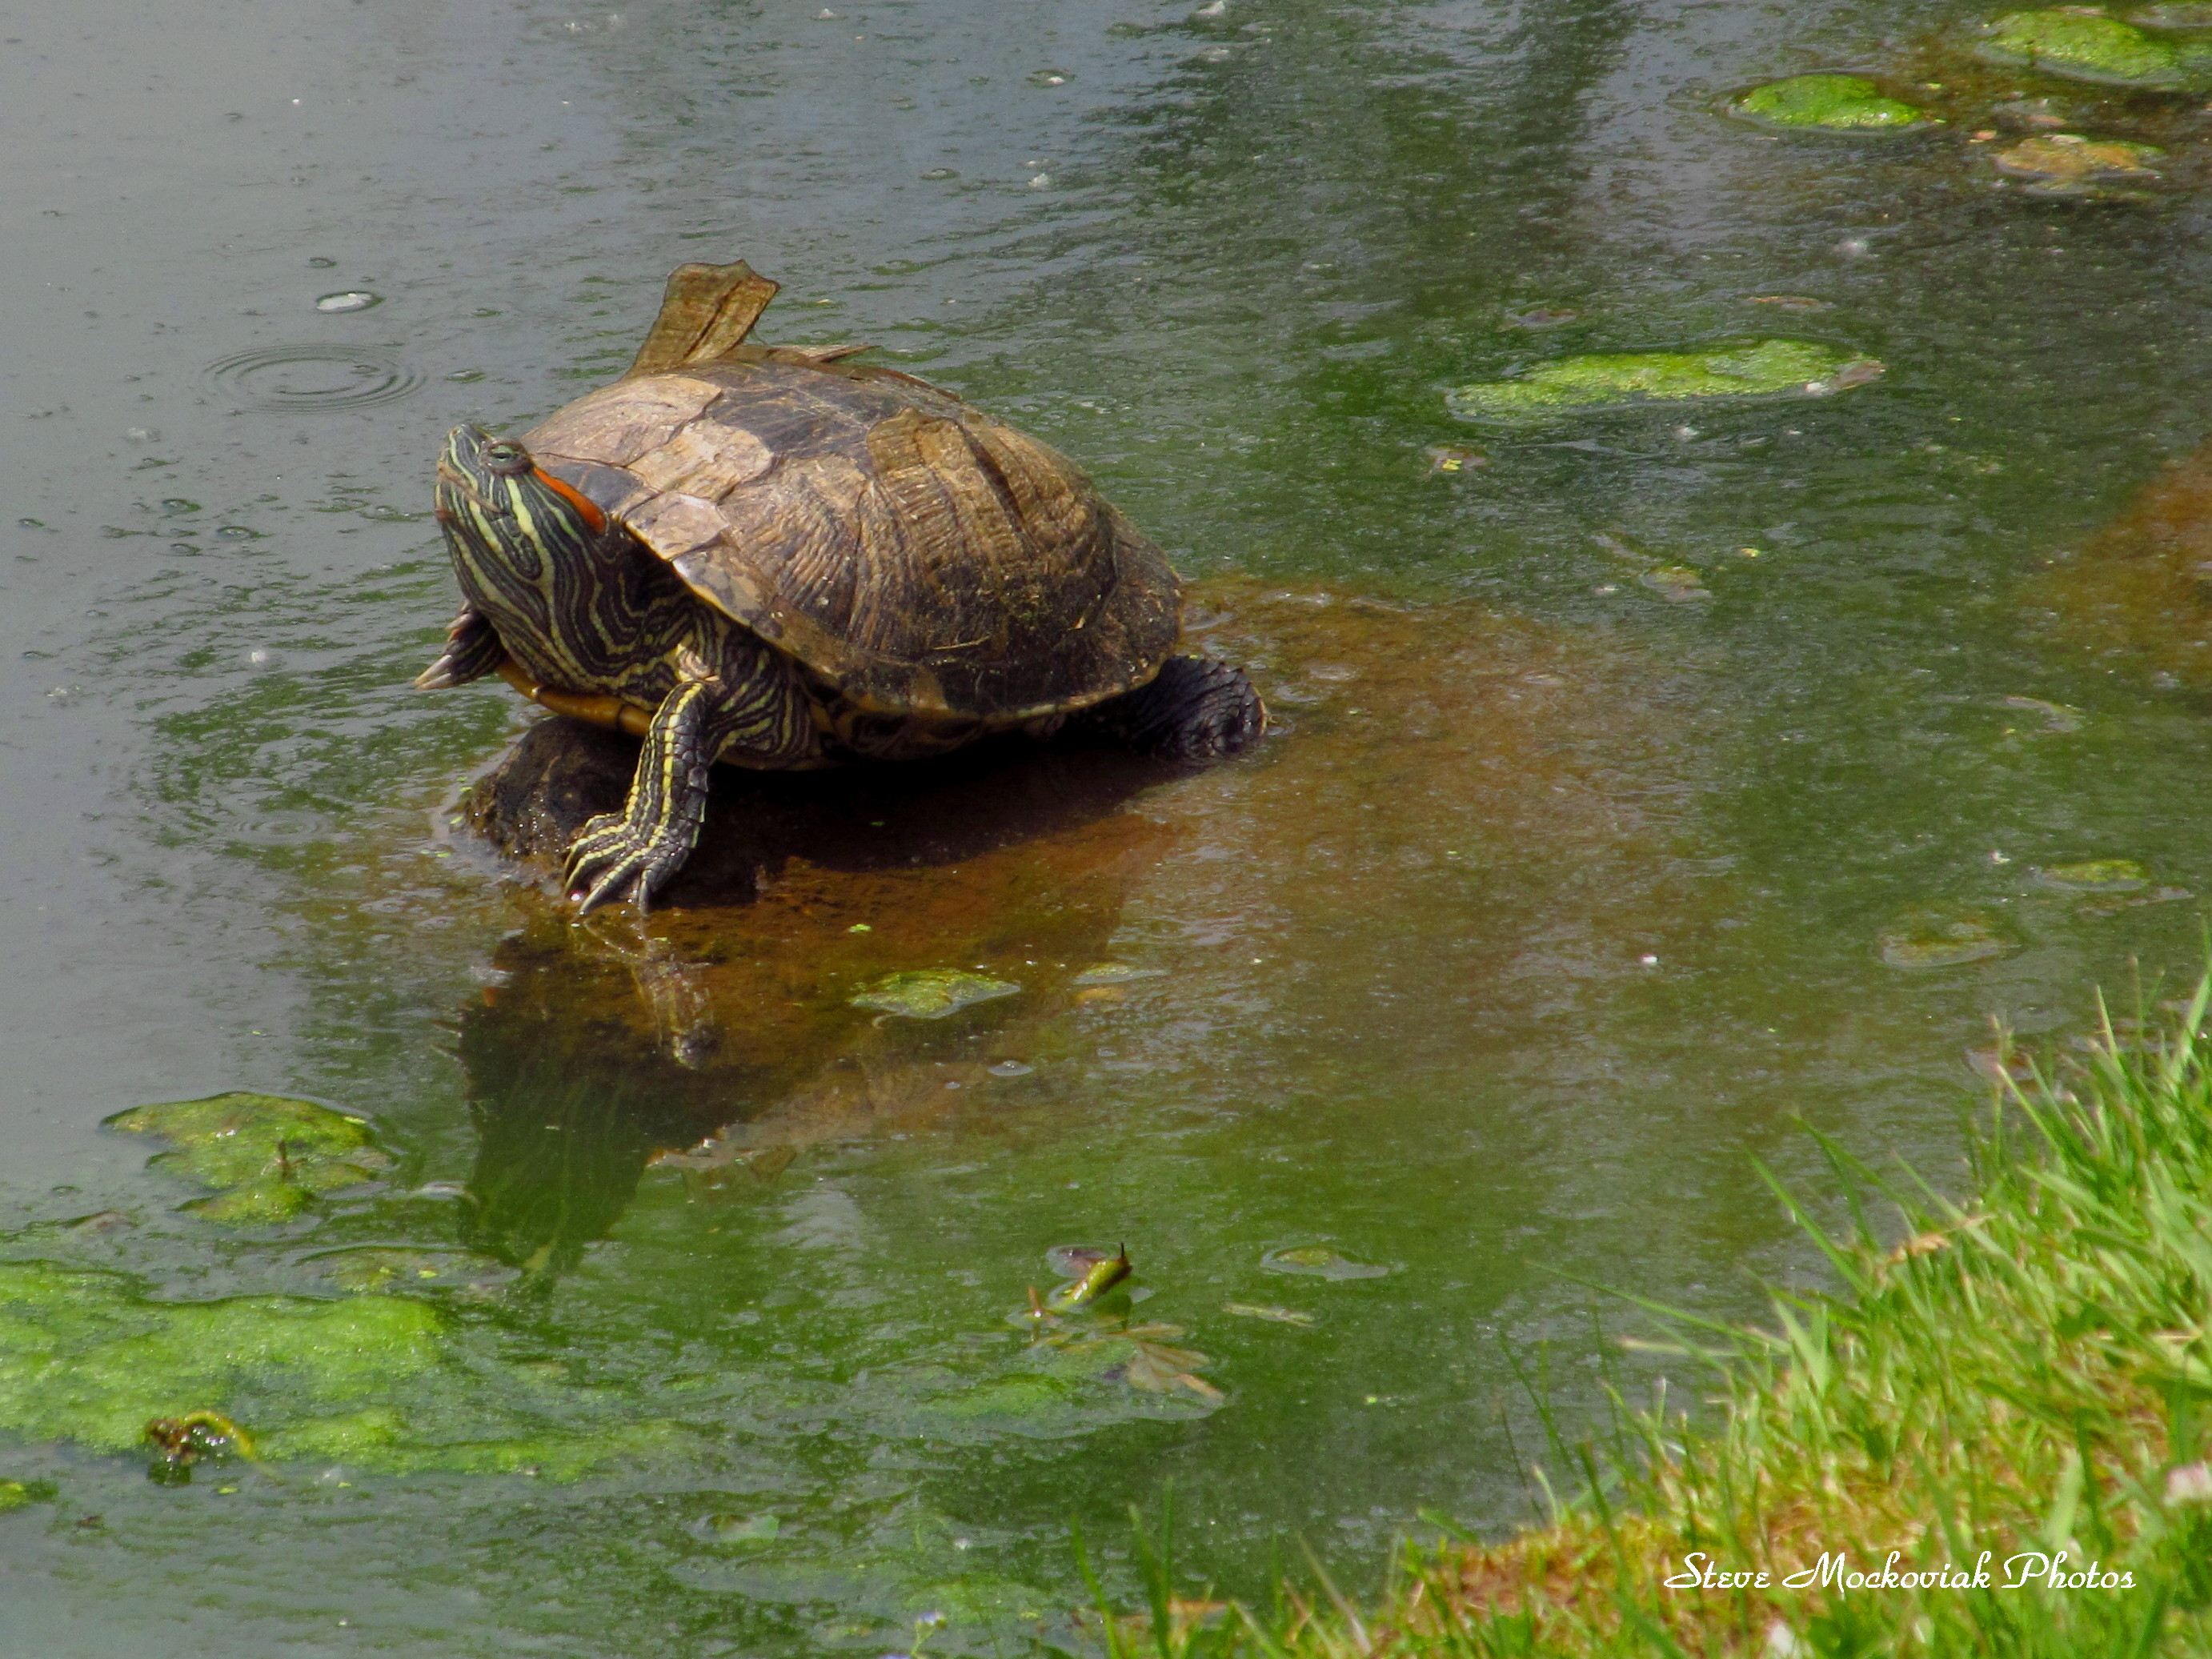 Injured Turtle_2542.jpg